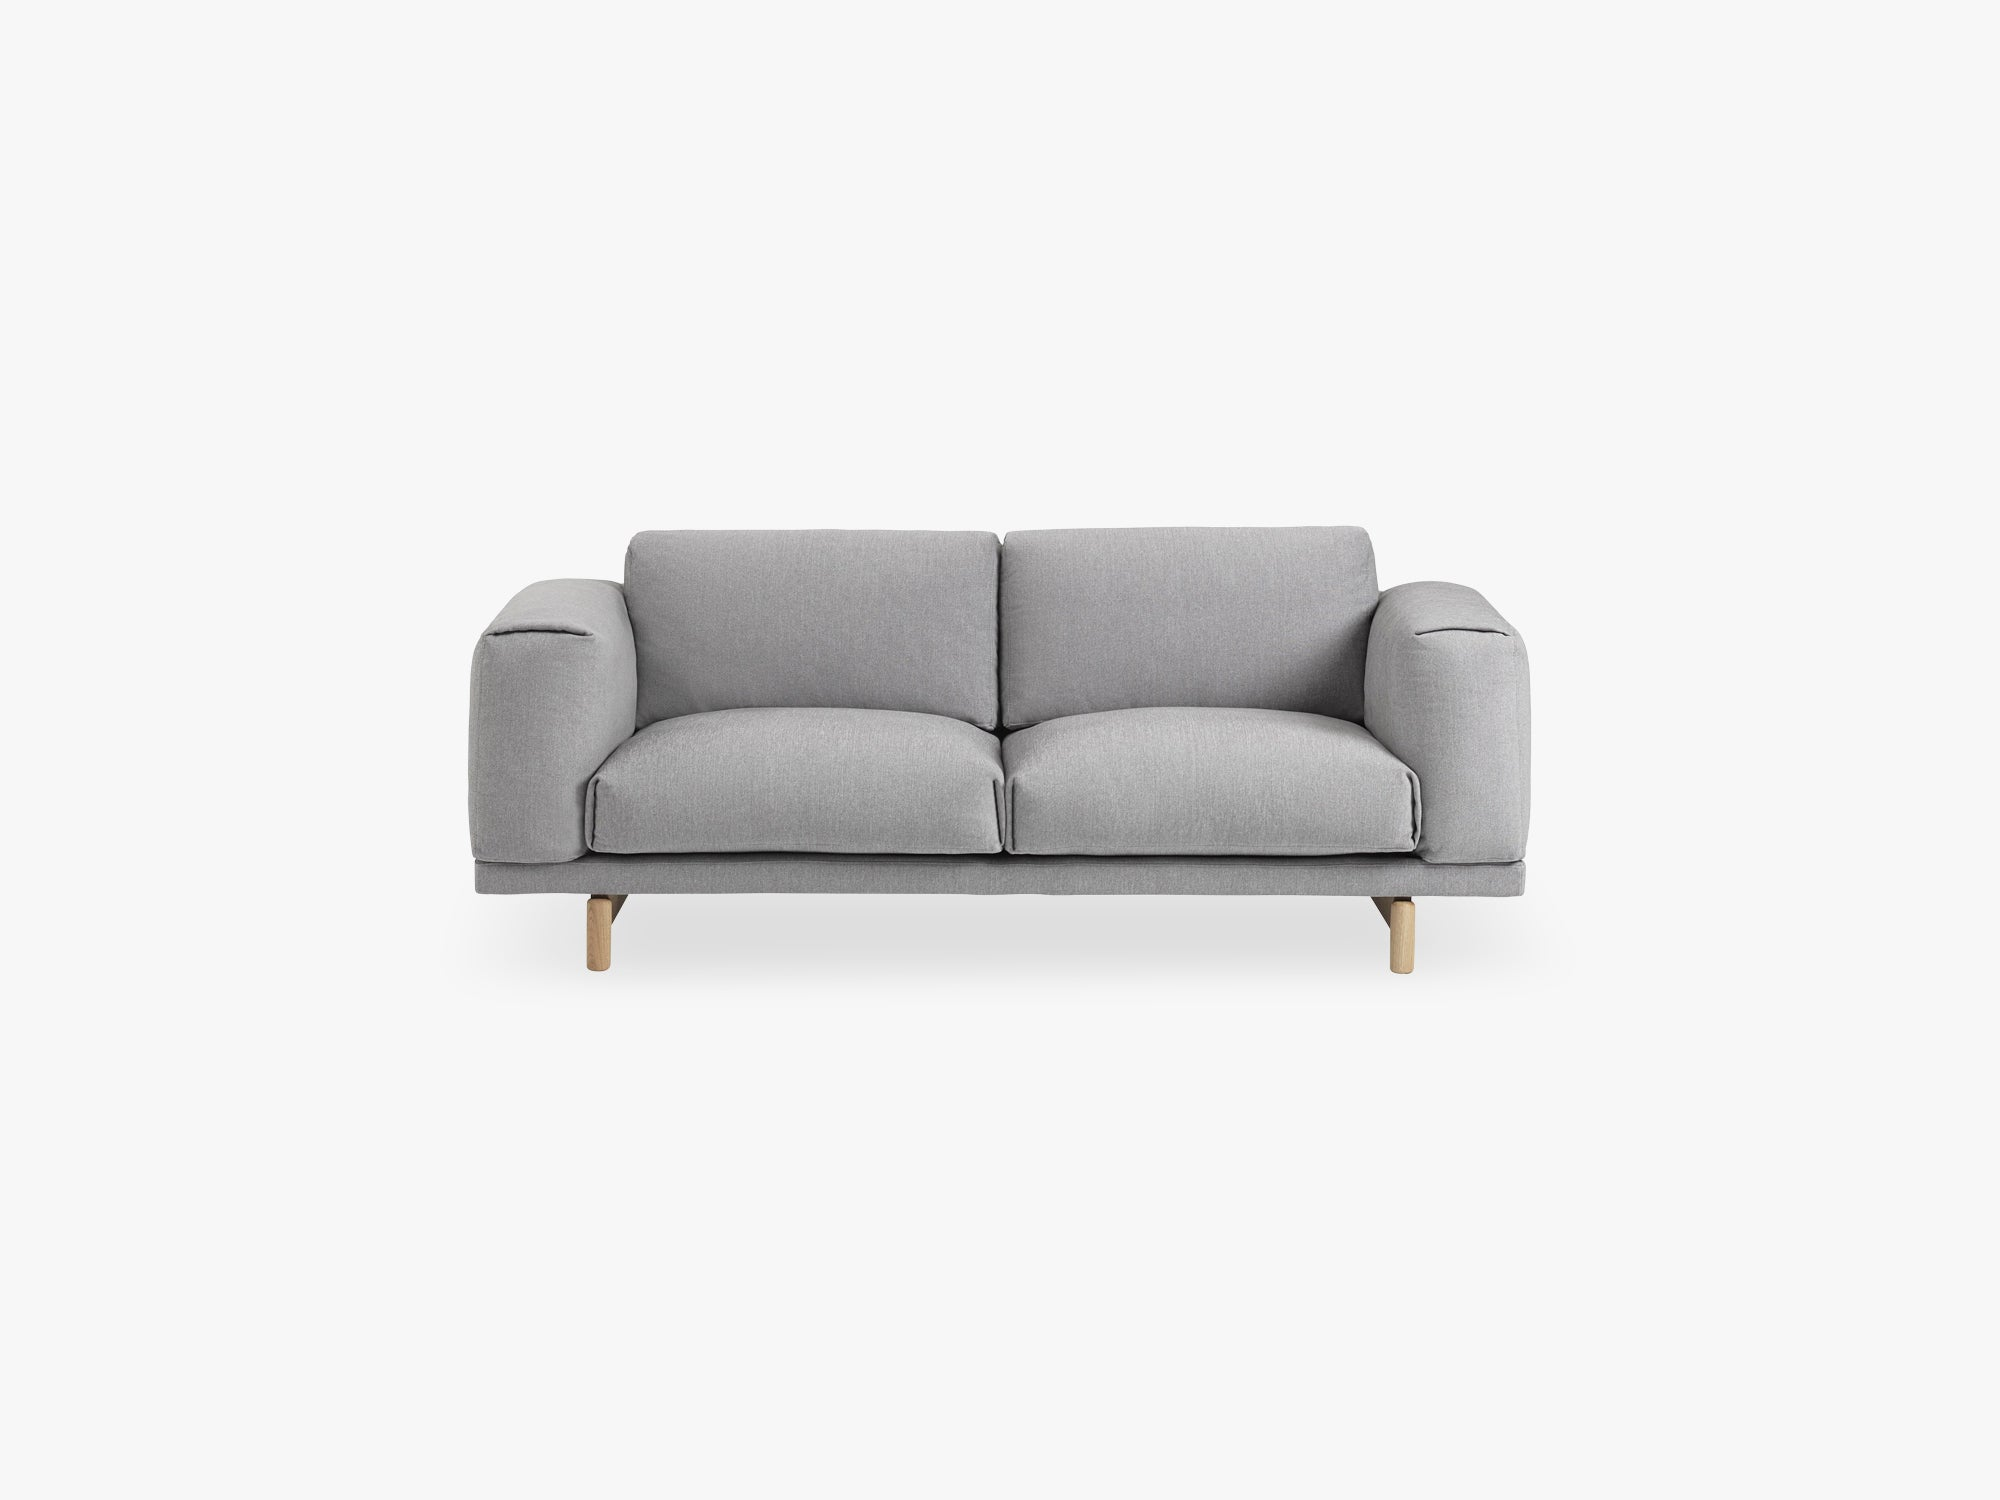 Rest Sofa - 2-Seater, Vancouver 14 fra Muuto